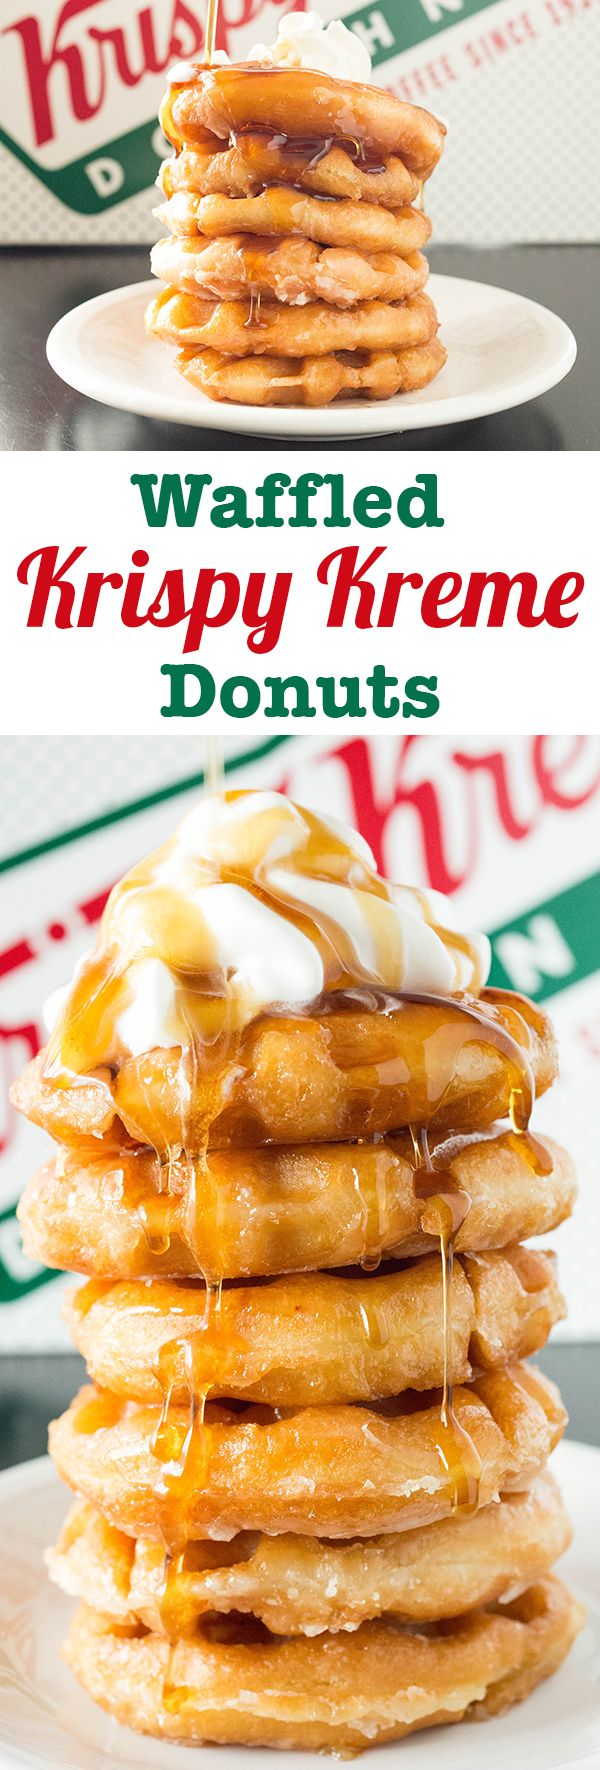 Use leftover Krispy Kreme to make donut waffles! Bring new life to stale donuts with this recipe.